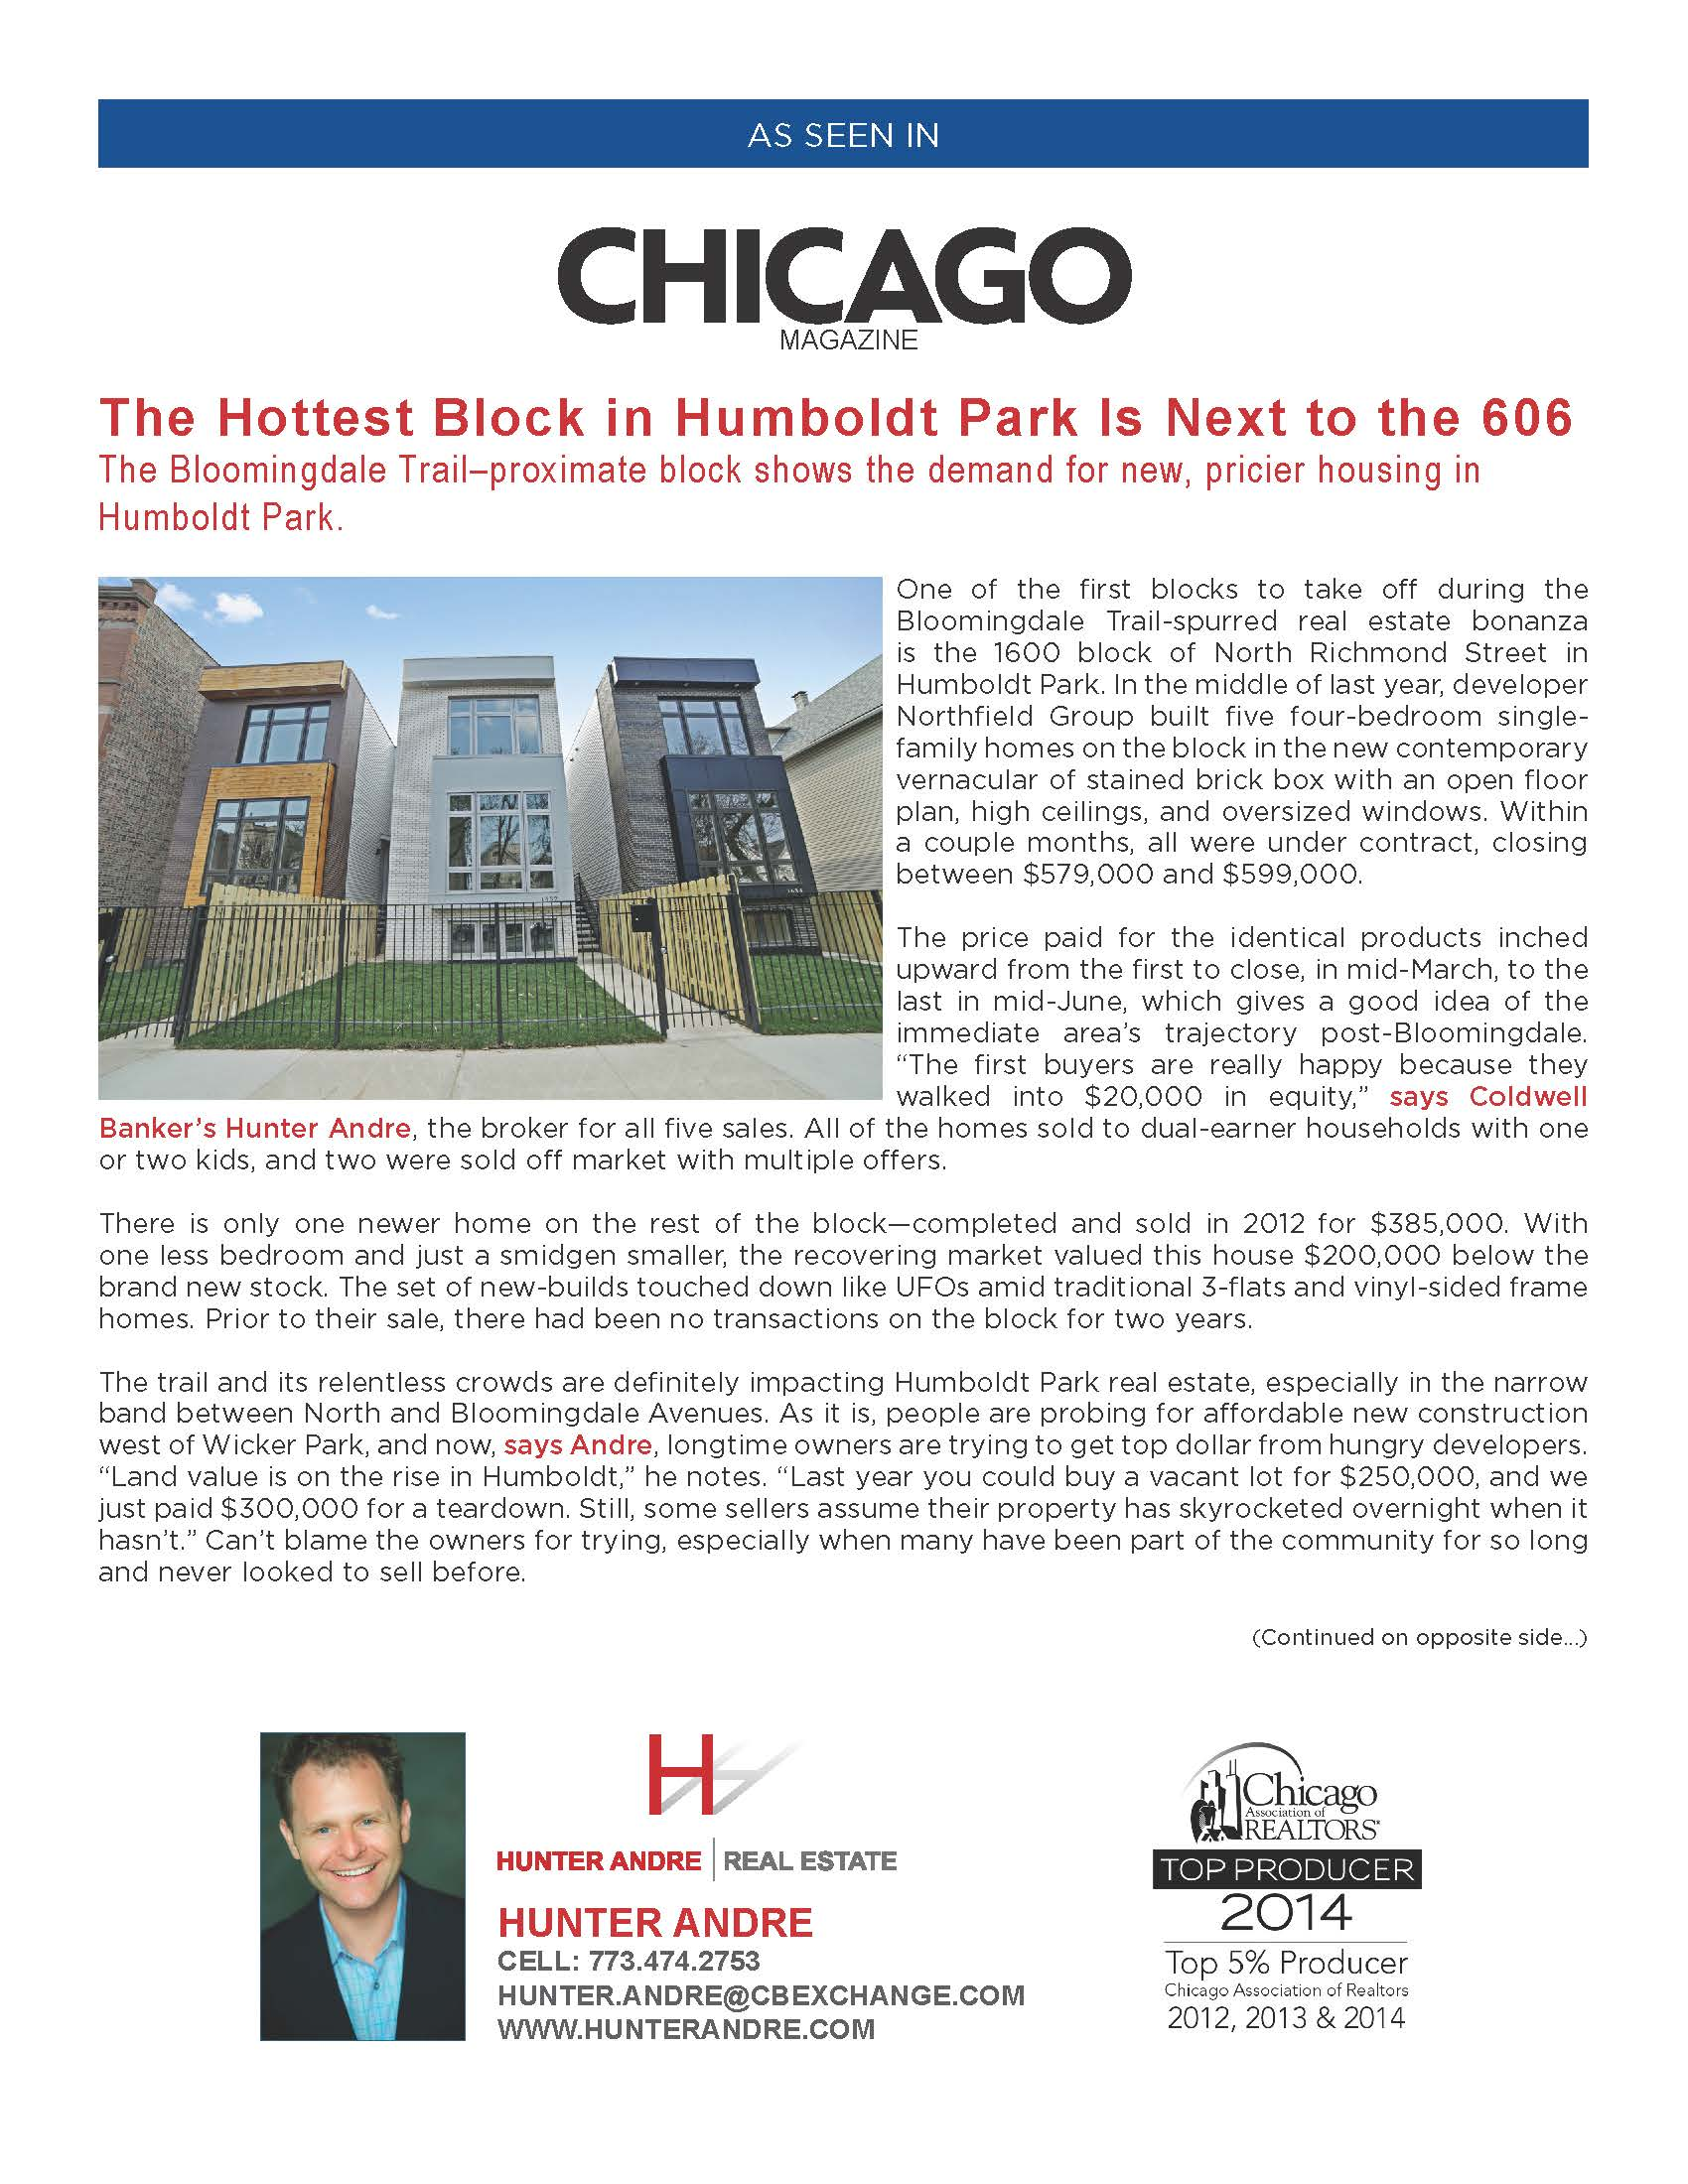 Chicago Magazine - Hottest Block in Humboldt Park